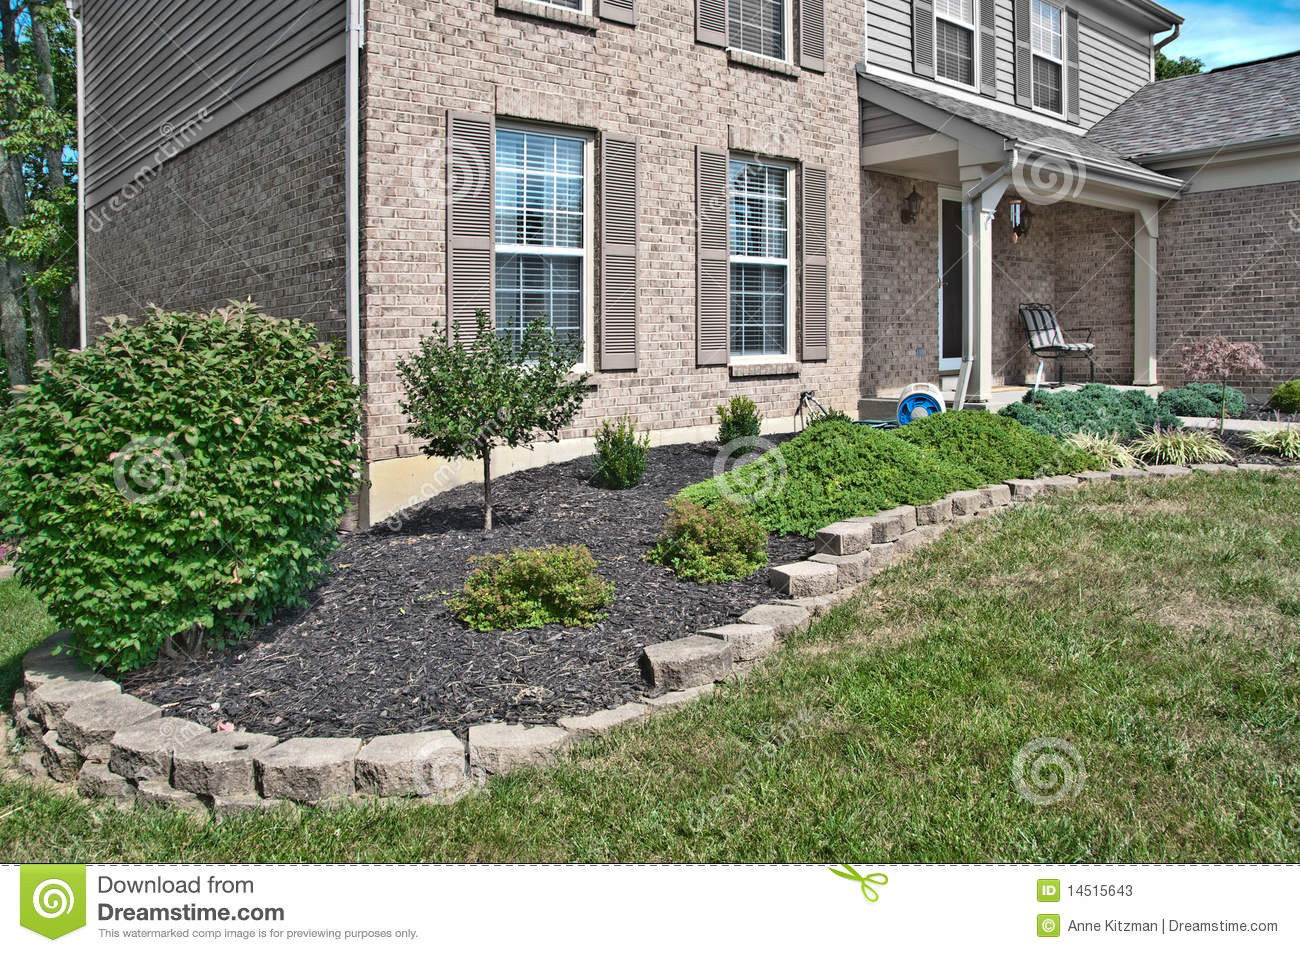 Brick home landscaping beds stock photos image 14515643 for Landscaping bricks